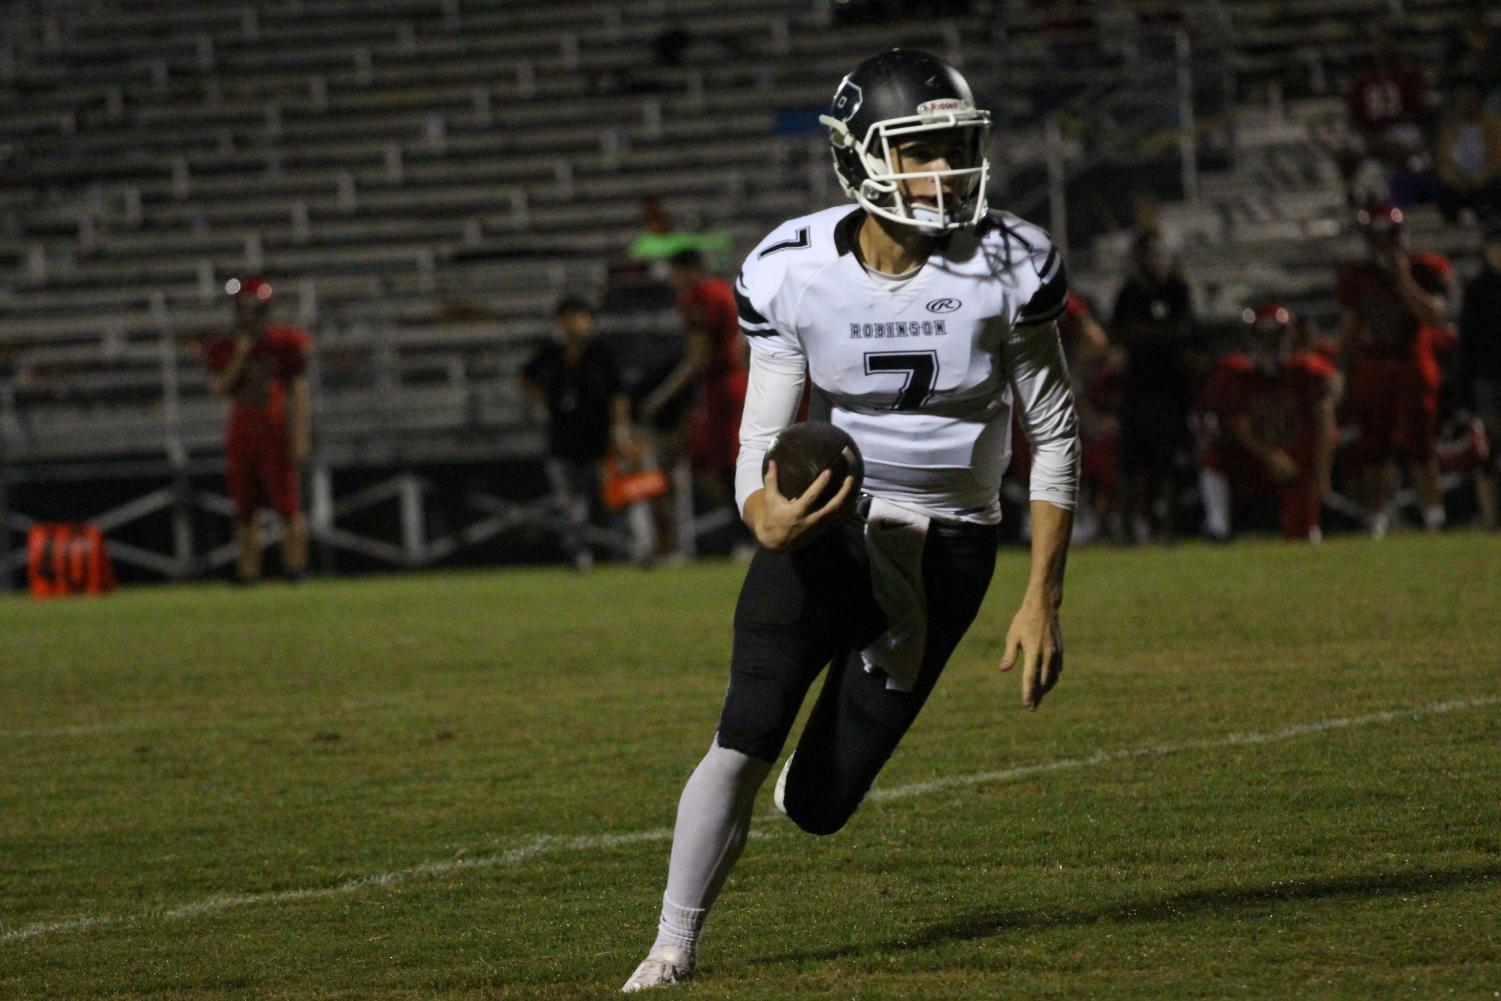 Quarterback Kobe Copple ('19) runs the ball into the end zone. Copple ran for two touchdowns throughout the night